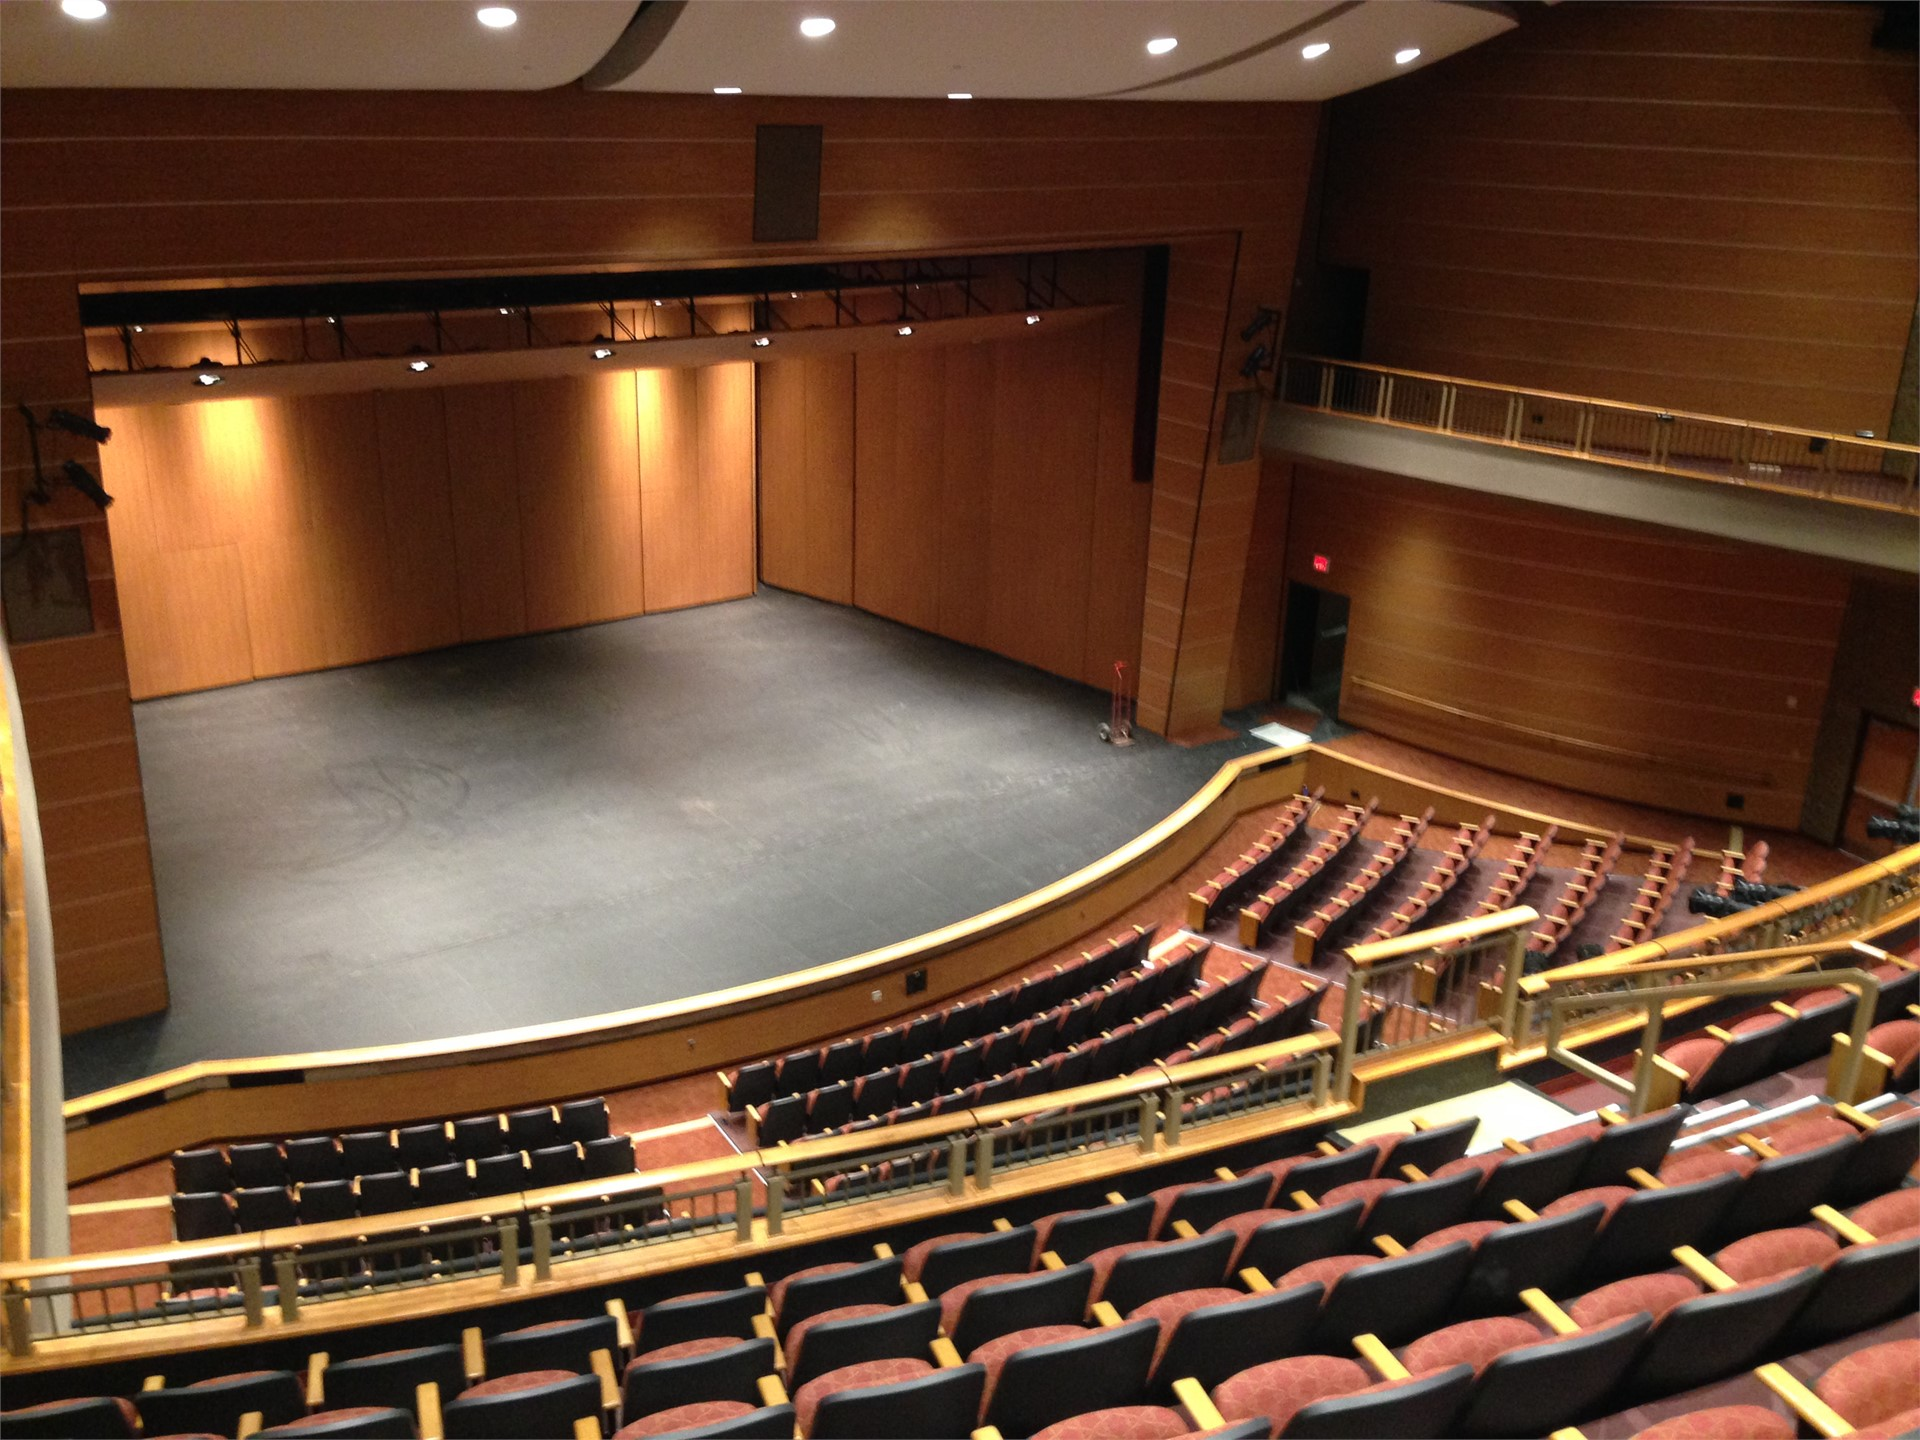 Picture of new auditorium stage from balcony